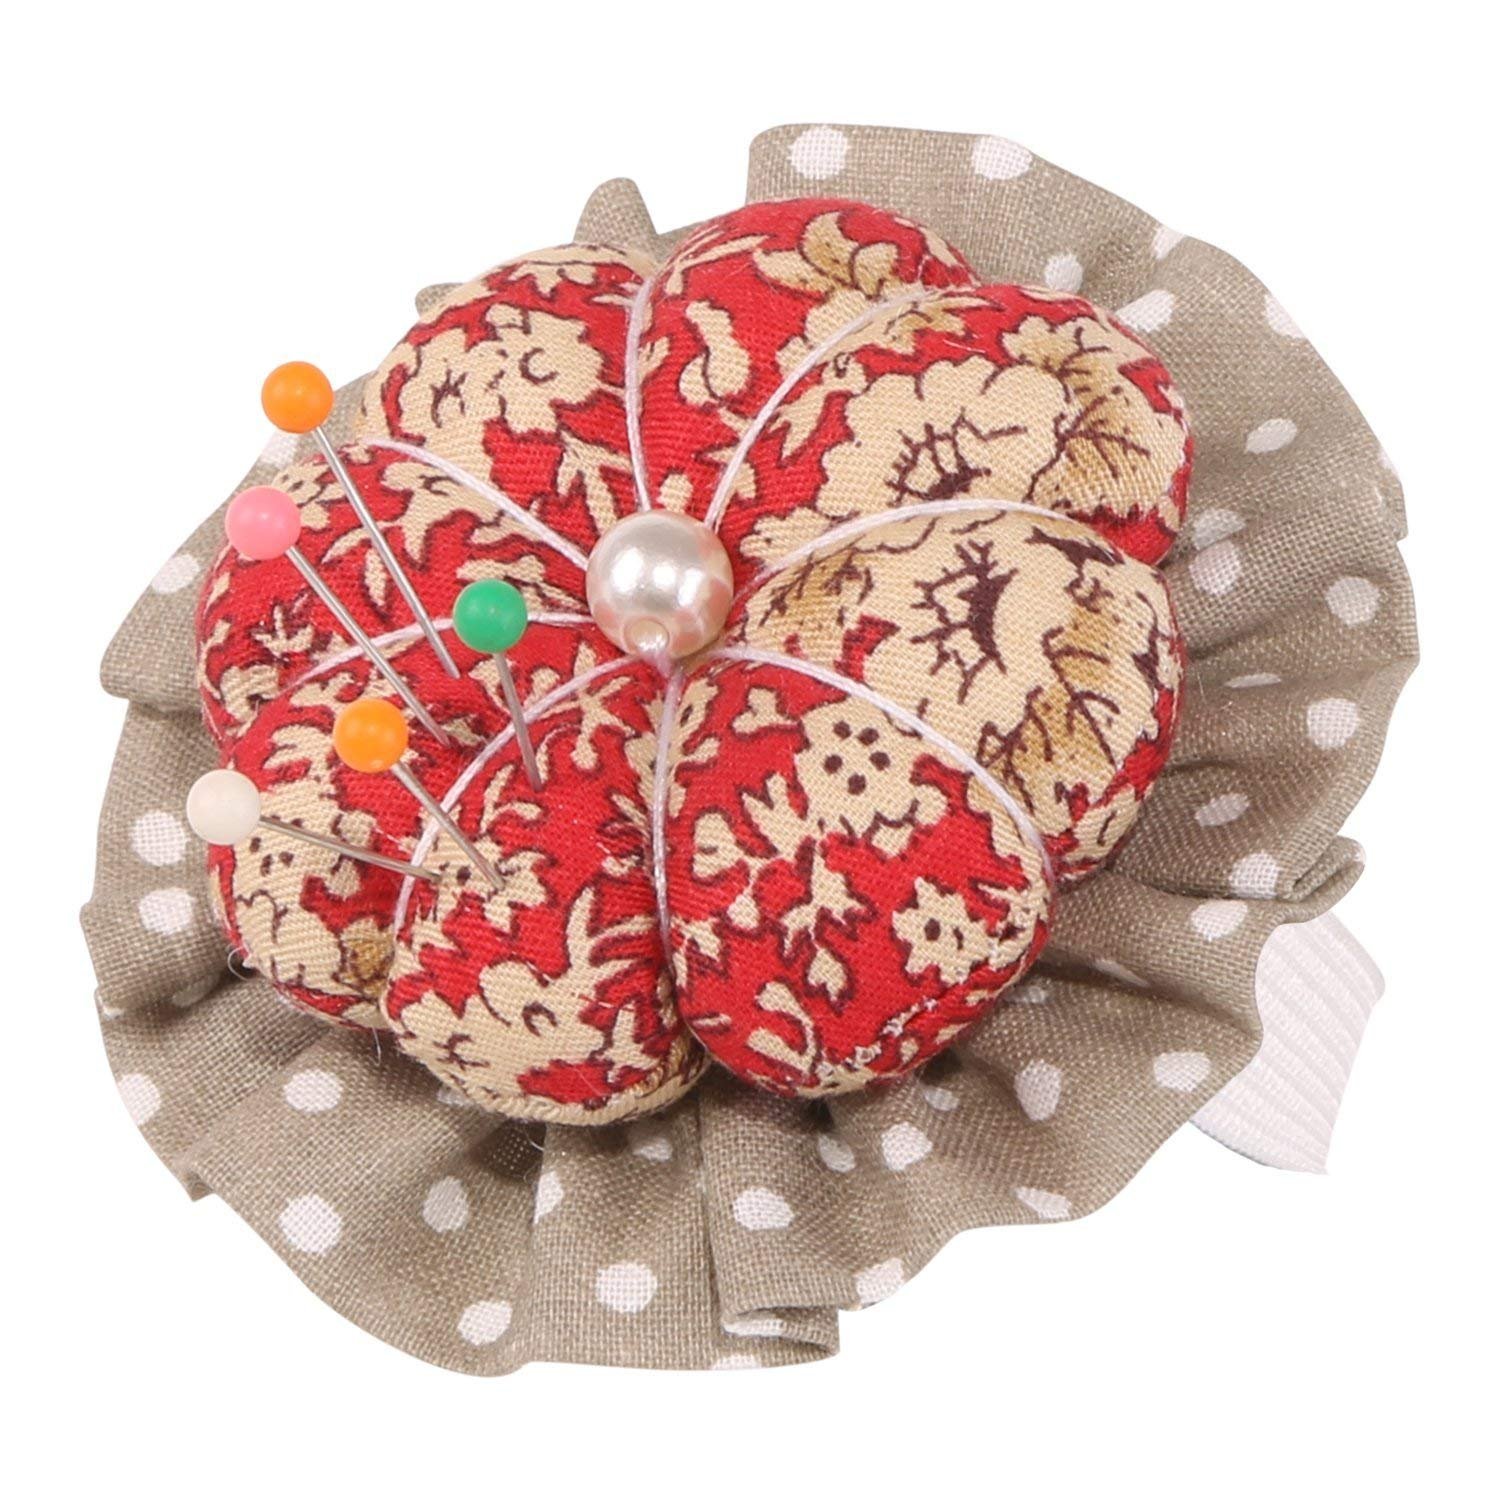 Neoviva Fabric Coated Pin Cushion with Wrist Band for Needlework Pack of 2 Style Pumpkin Floral Prism Pink